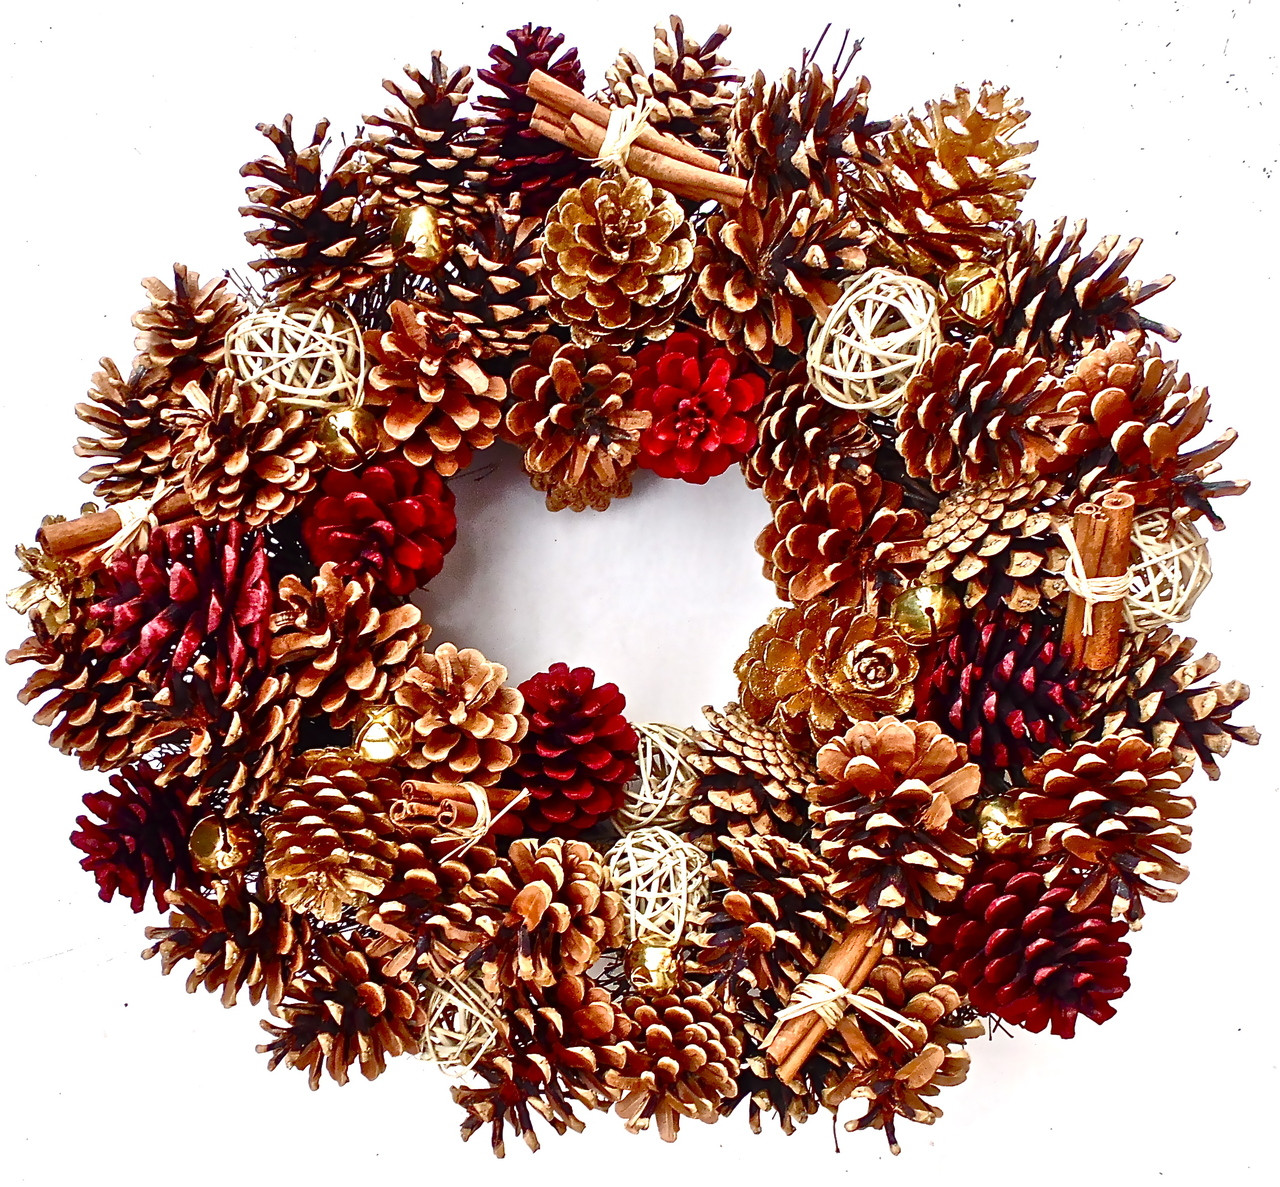 Pine Cone Wreath  20 in  The Wreath Depot - Christmas Decorations Home Depot